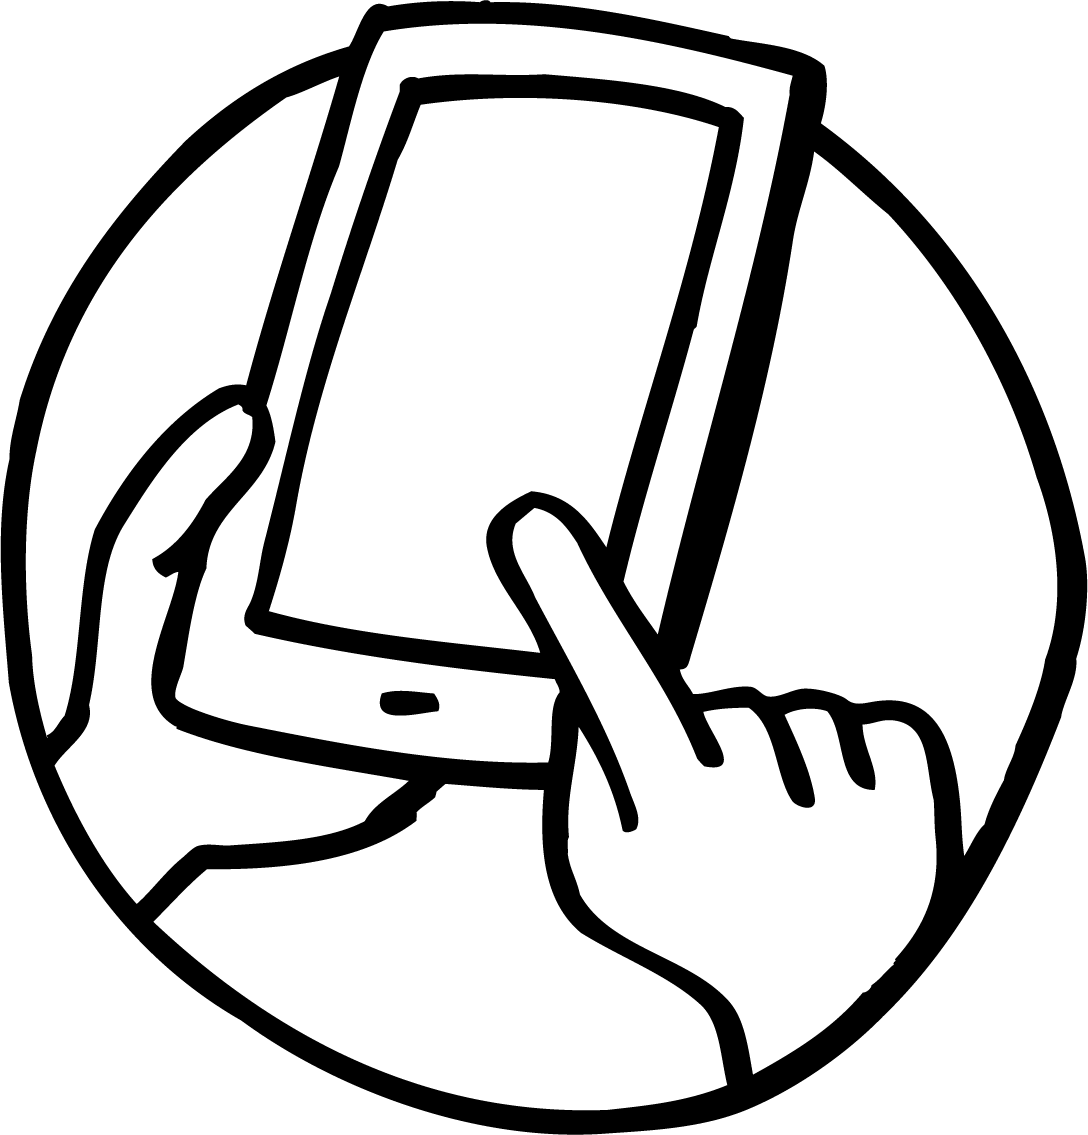 Phone clipart mobile calling. Telephone line drawing at